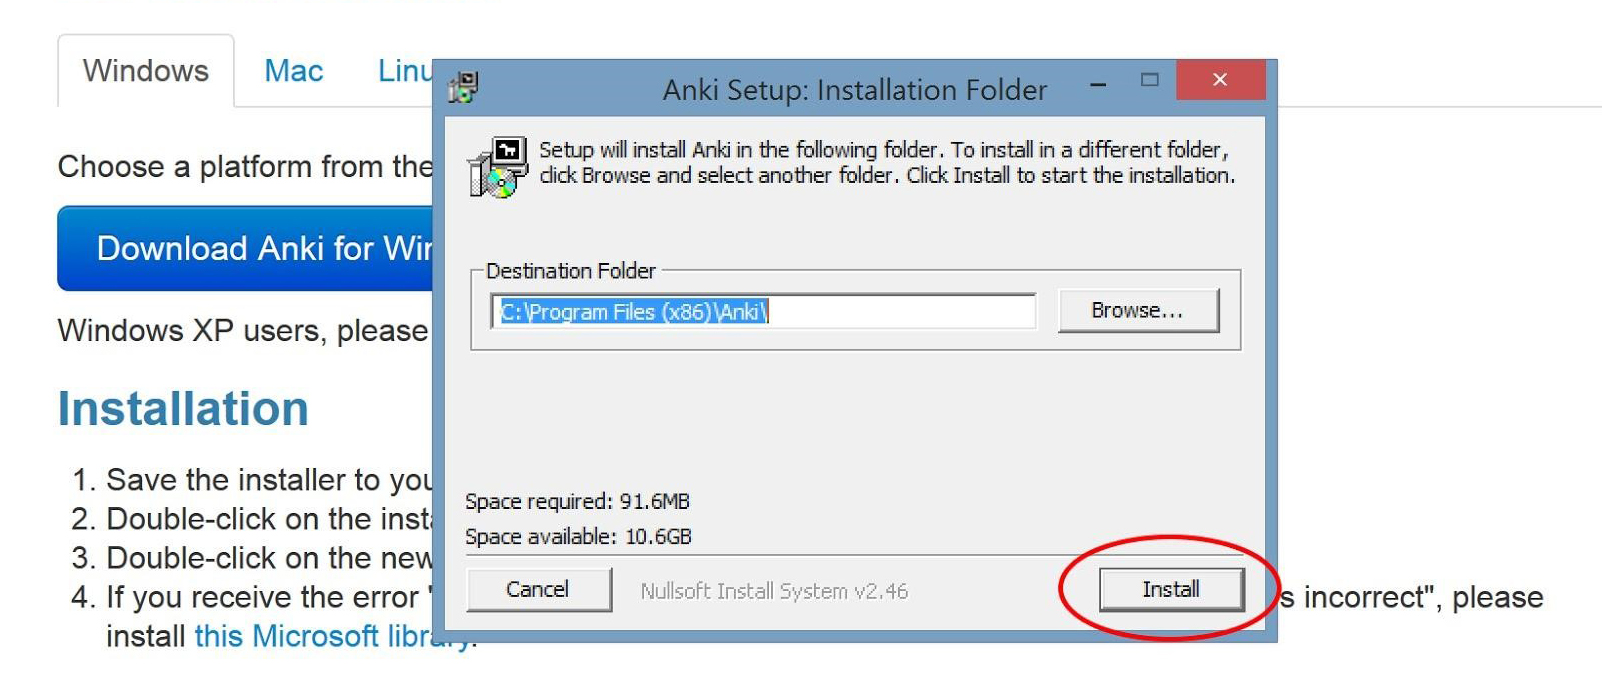 Does Anki work with Windows 10? – Fluent Forever